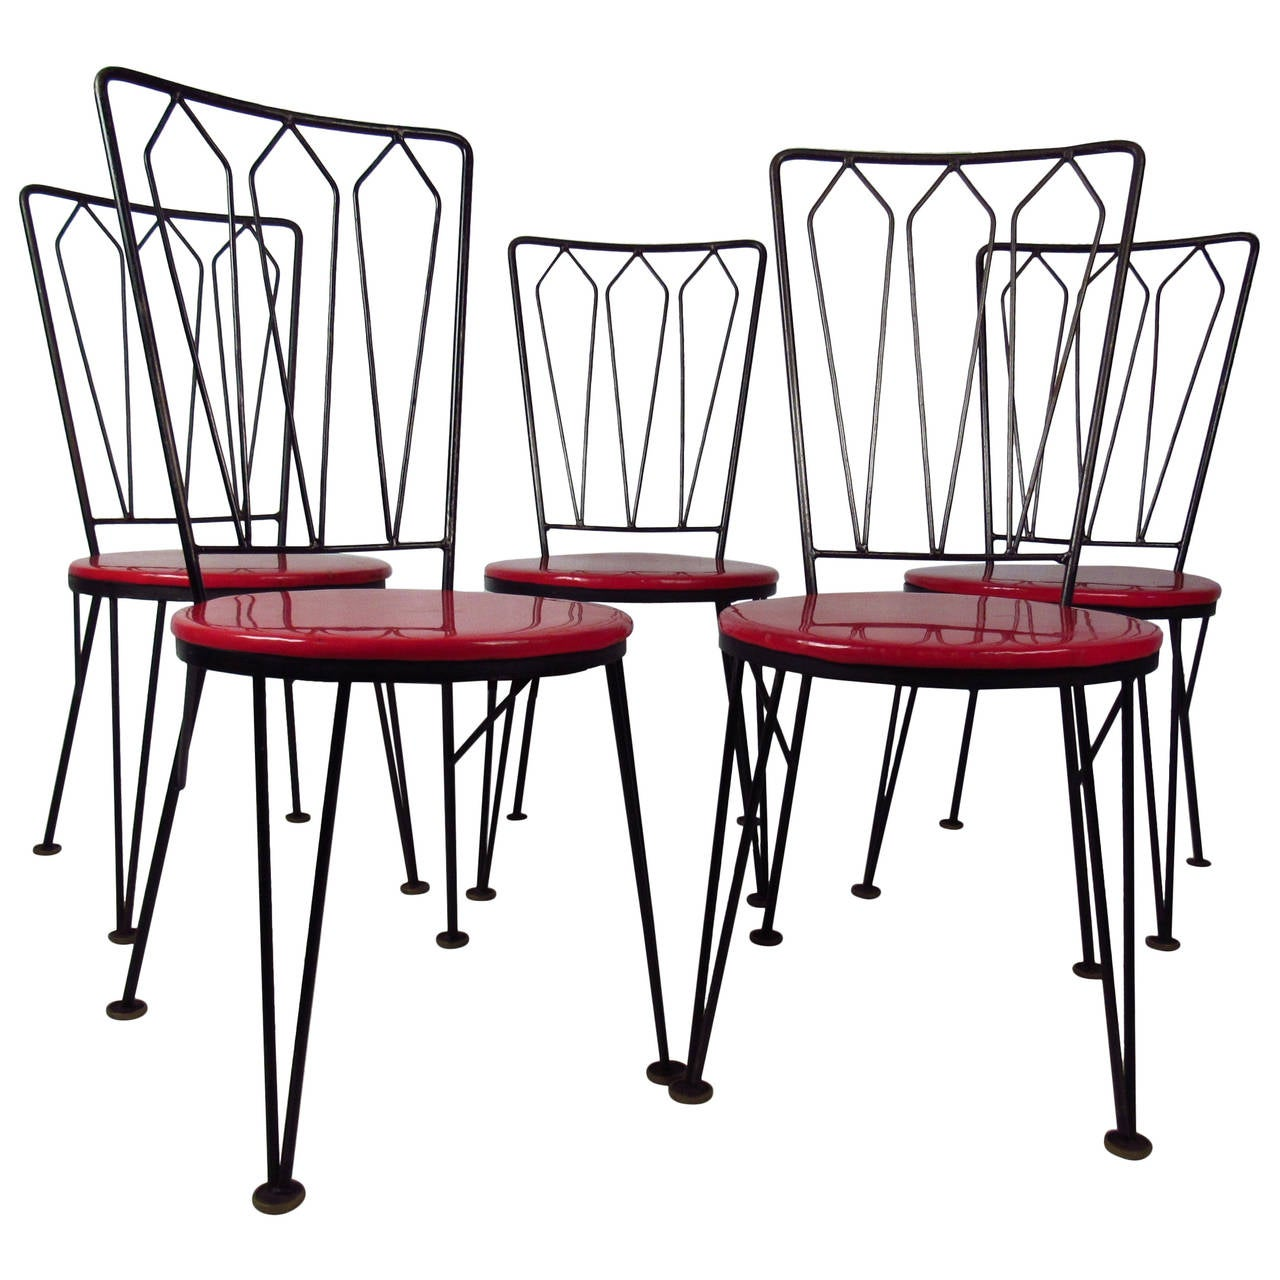 Stylish Vintage Metal Dining Chairs Circa 1950s For